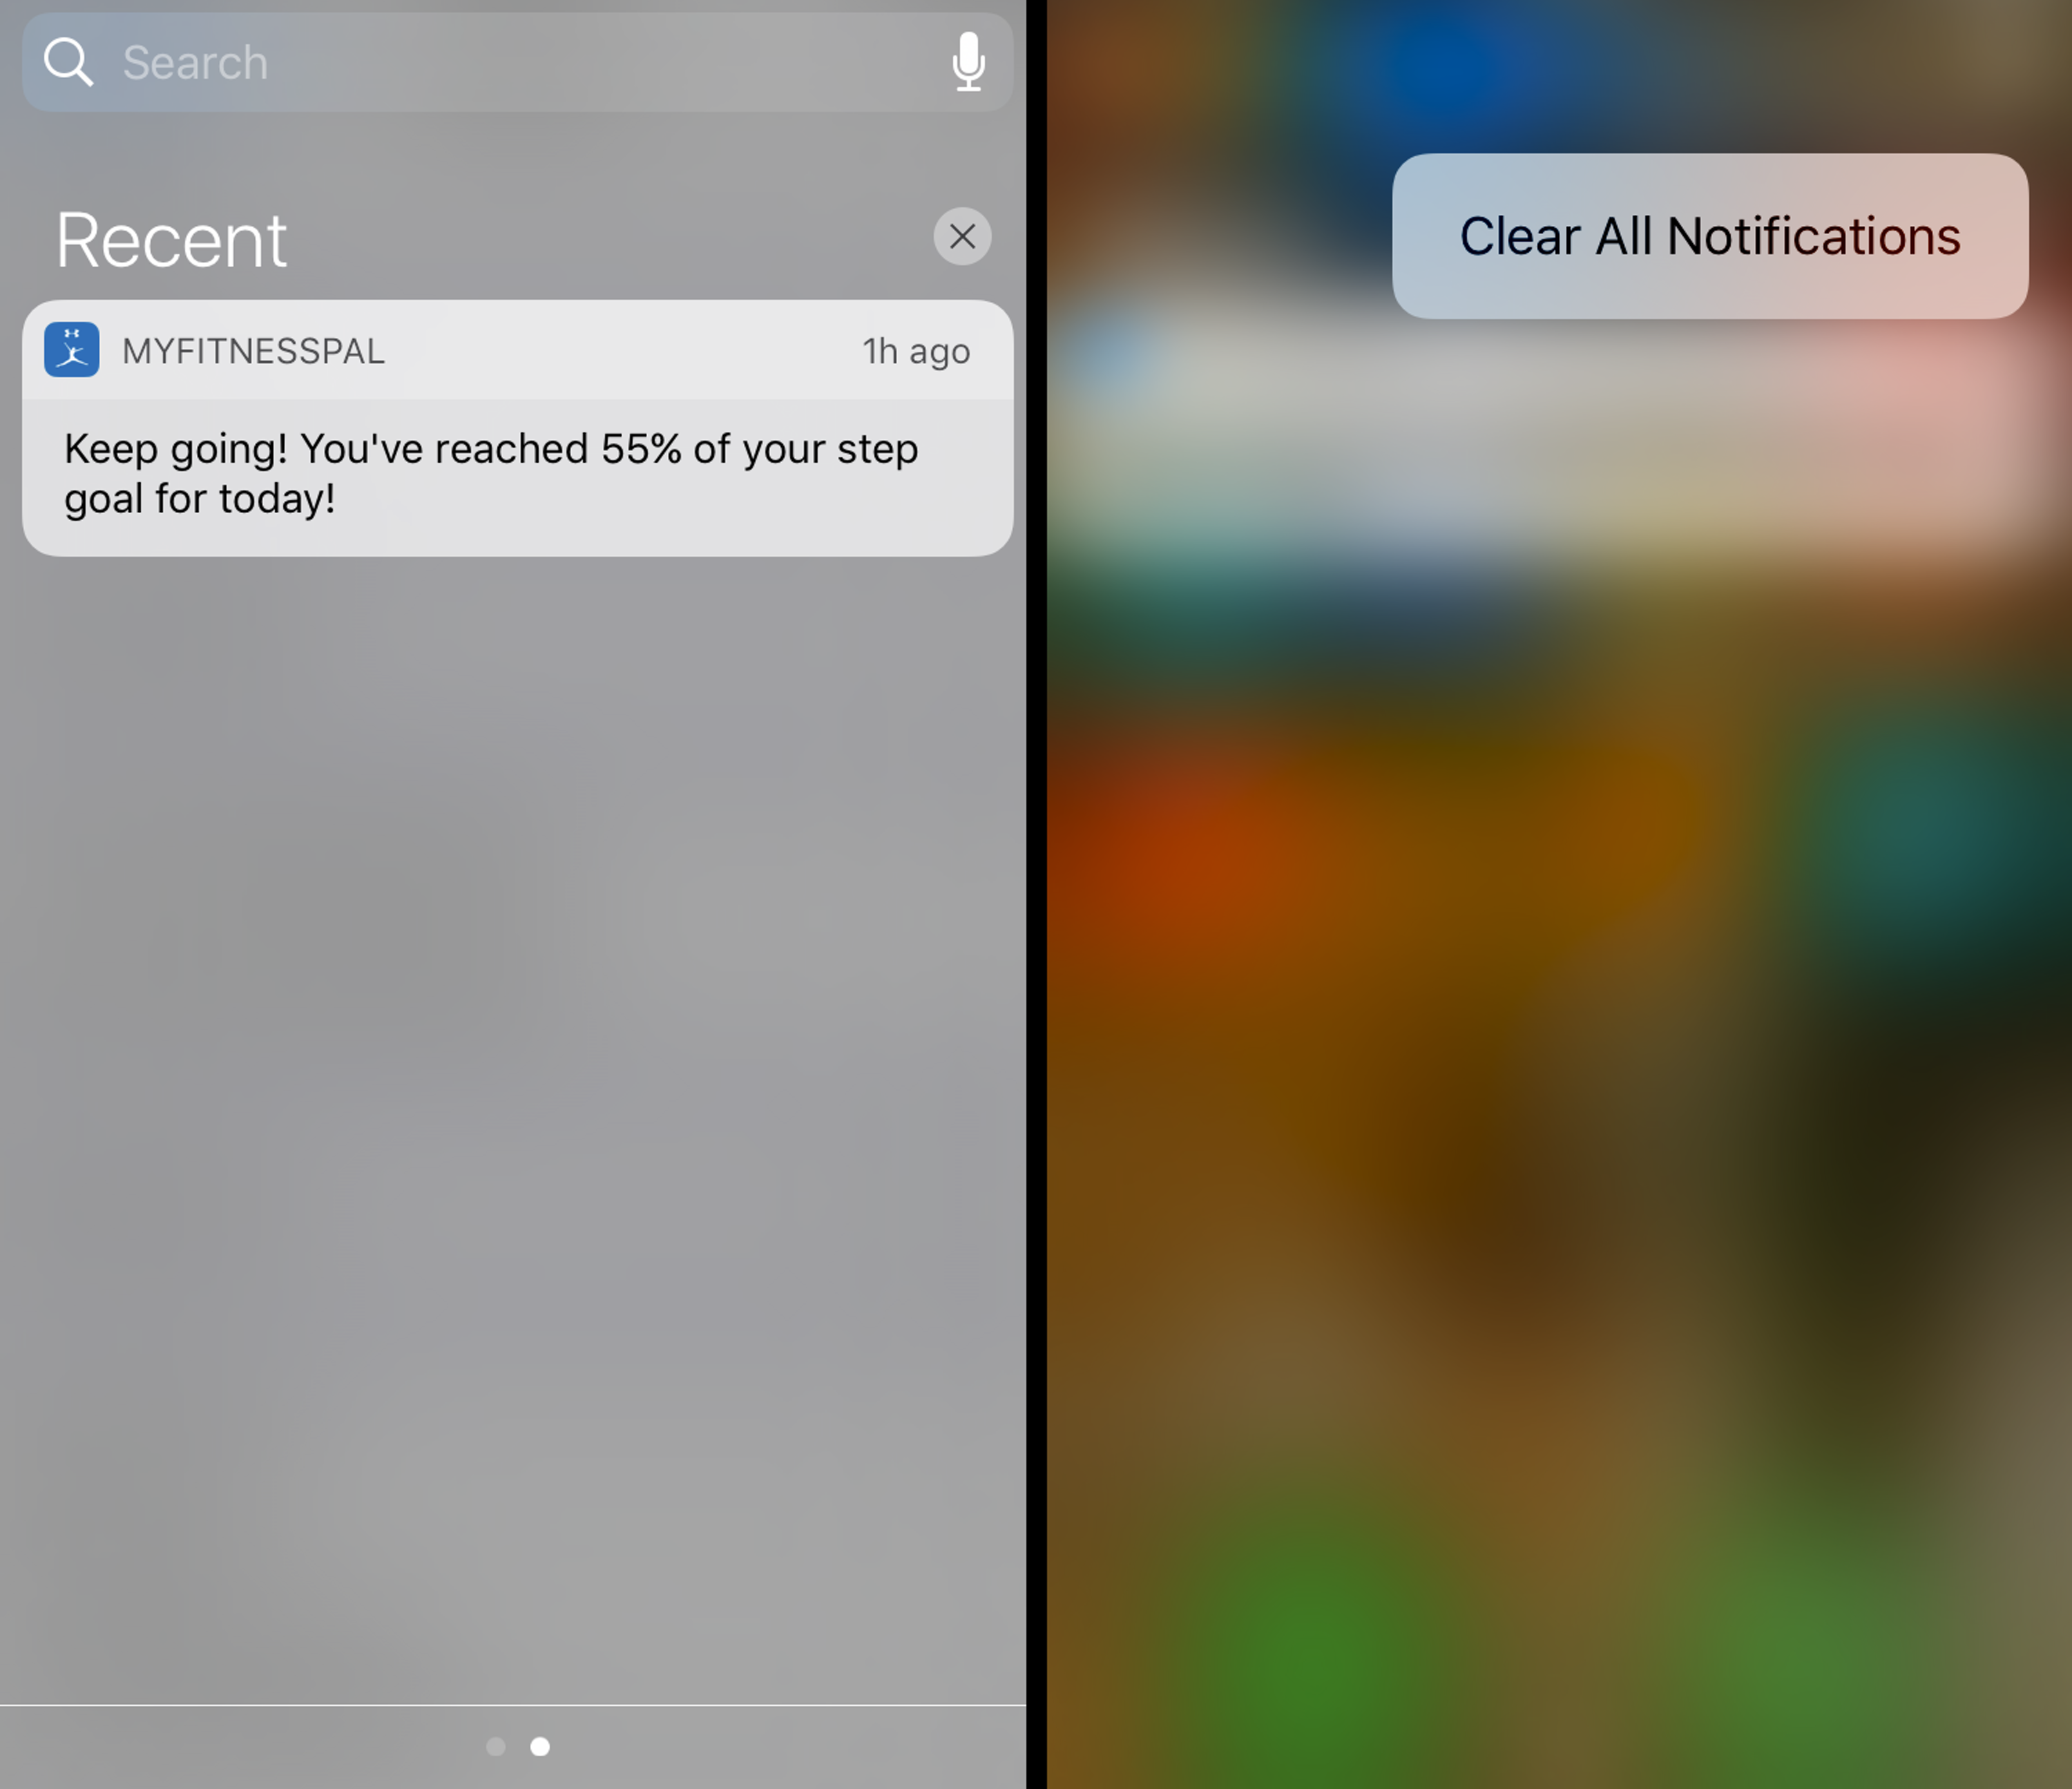 Screenshots show how to clear all notifications with iOS 10.